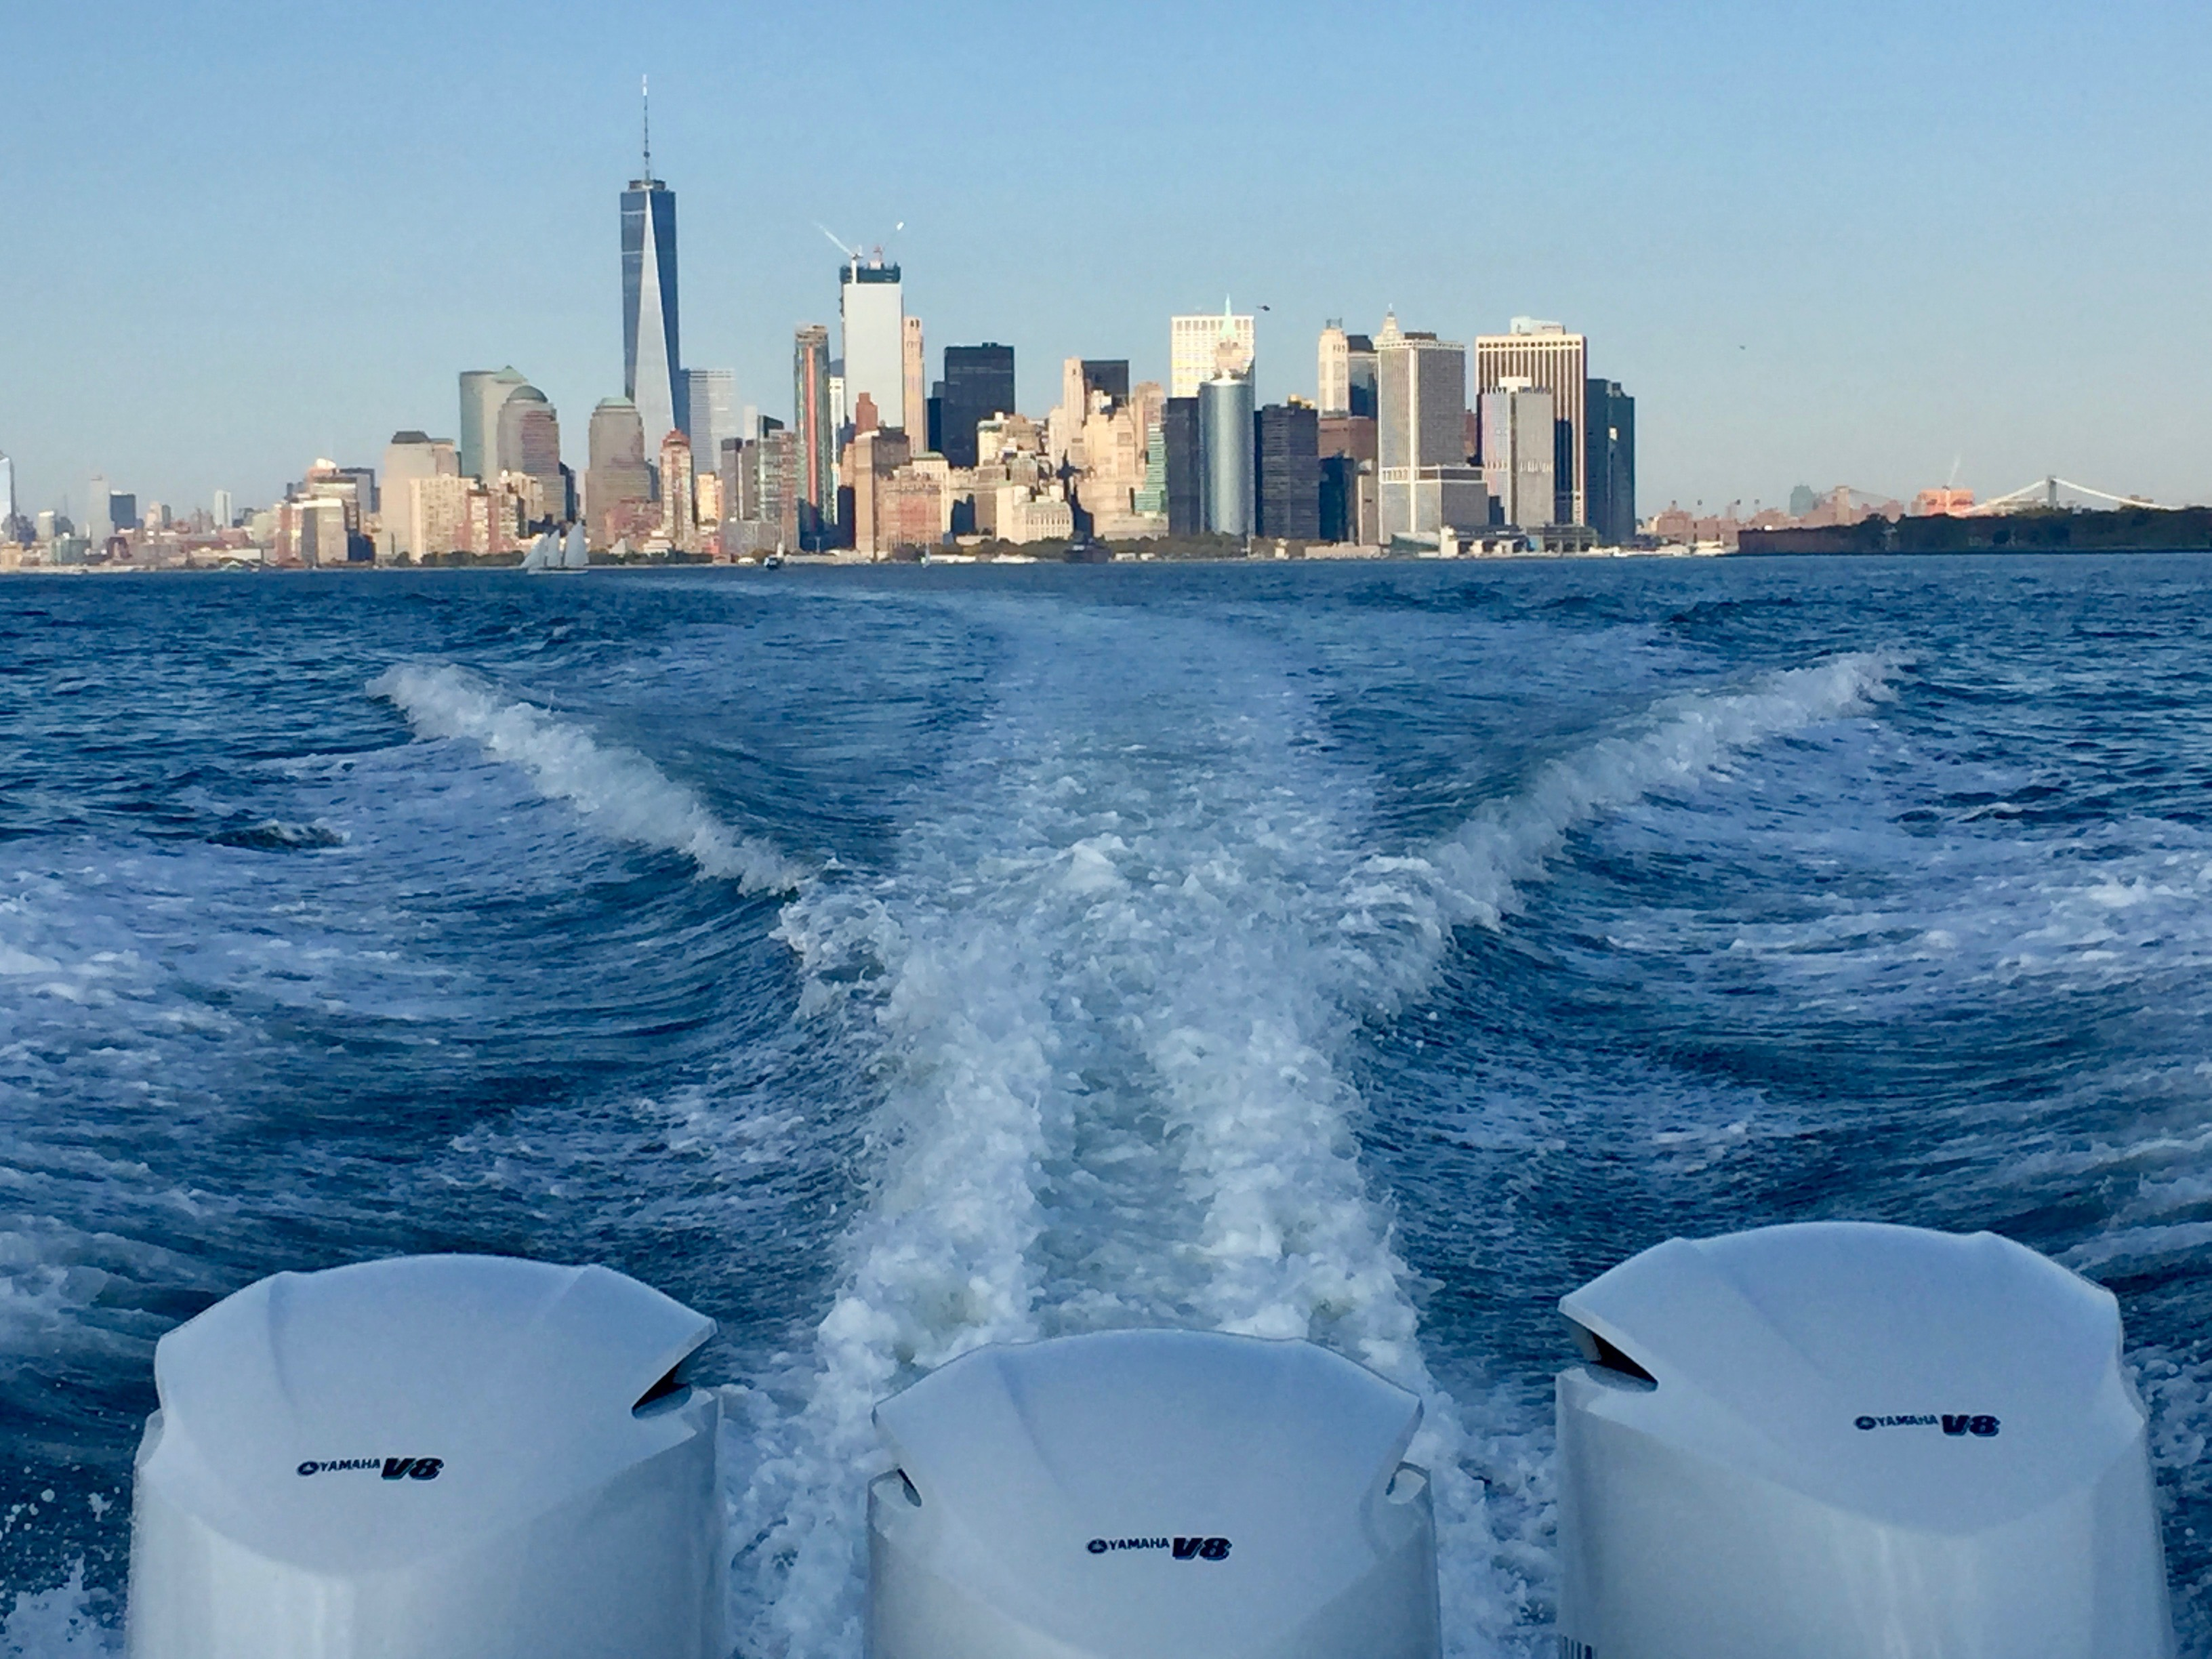 Dockwa Makes Wake: Cruising Down the Coast from Newport to Atlantic City